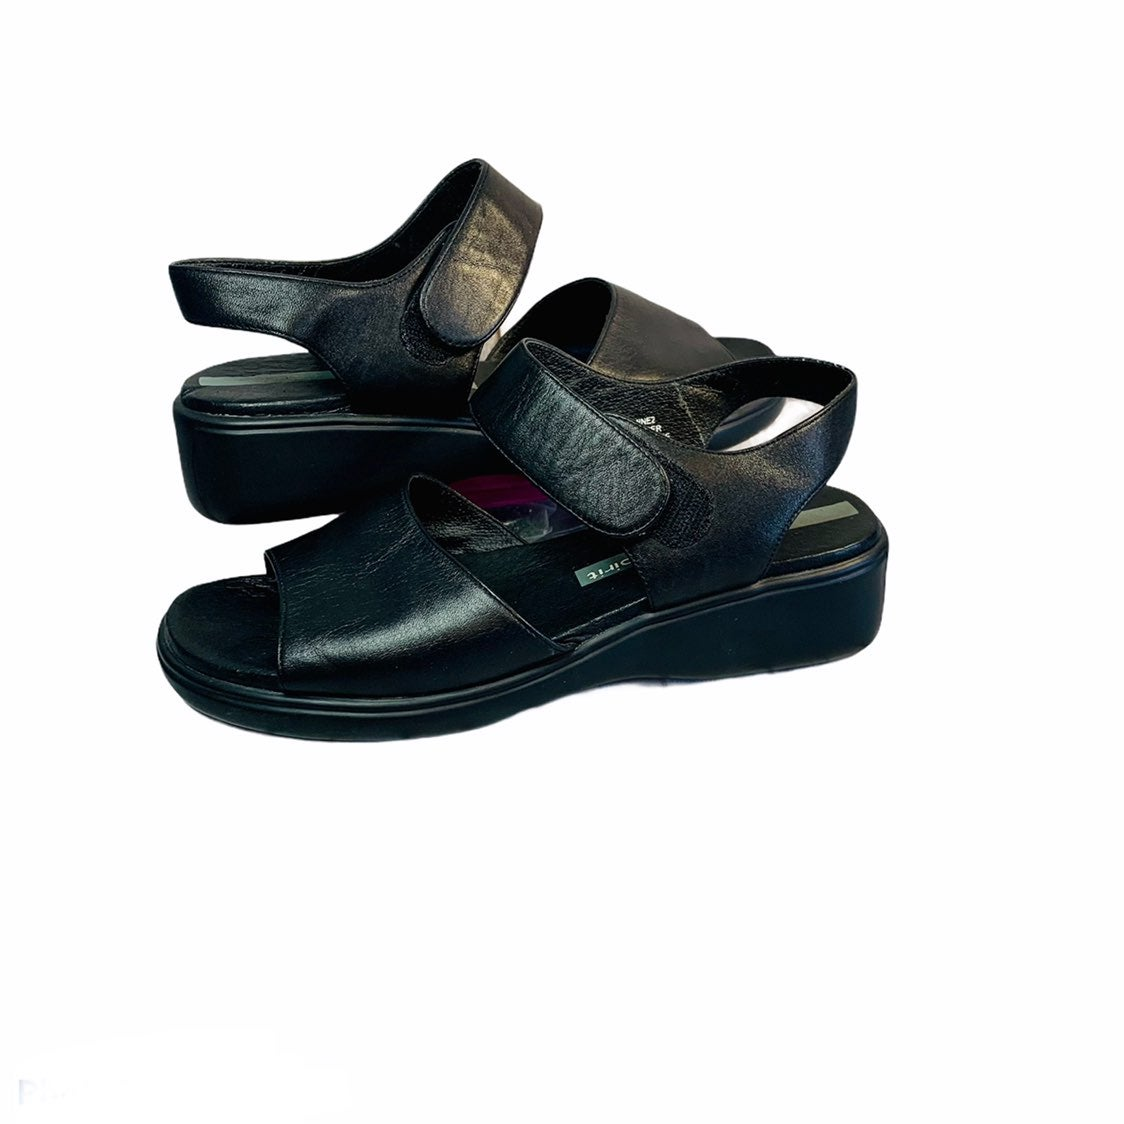 Easy Spirit Black Leather Sandals Size 7